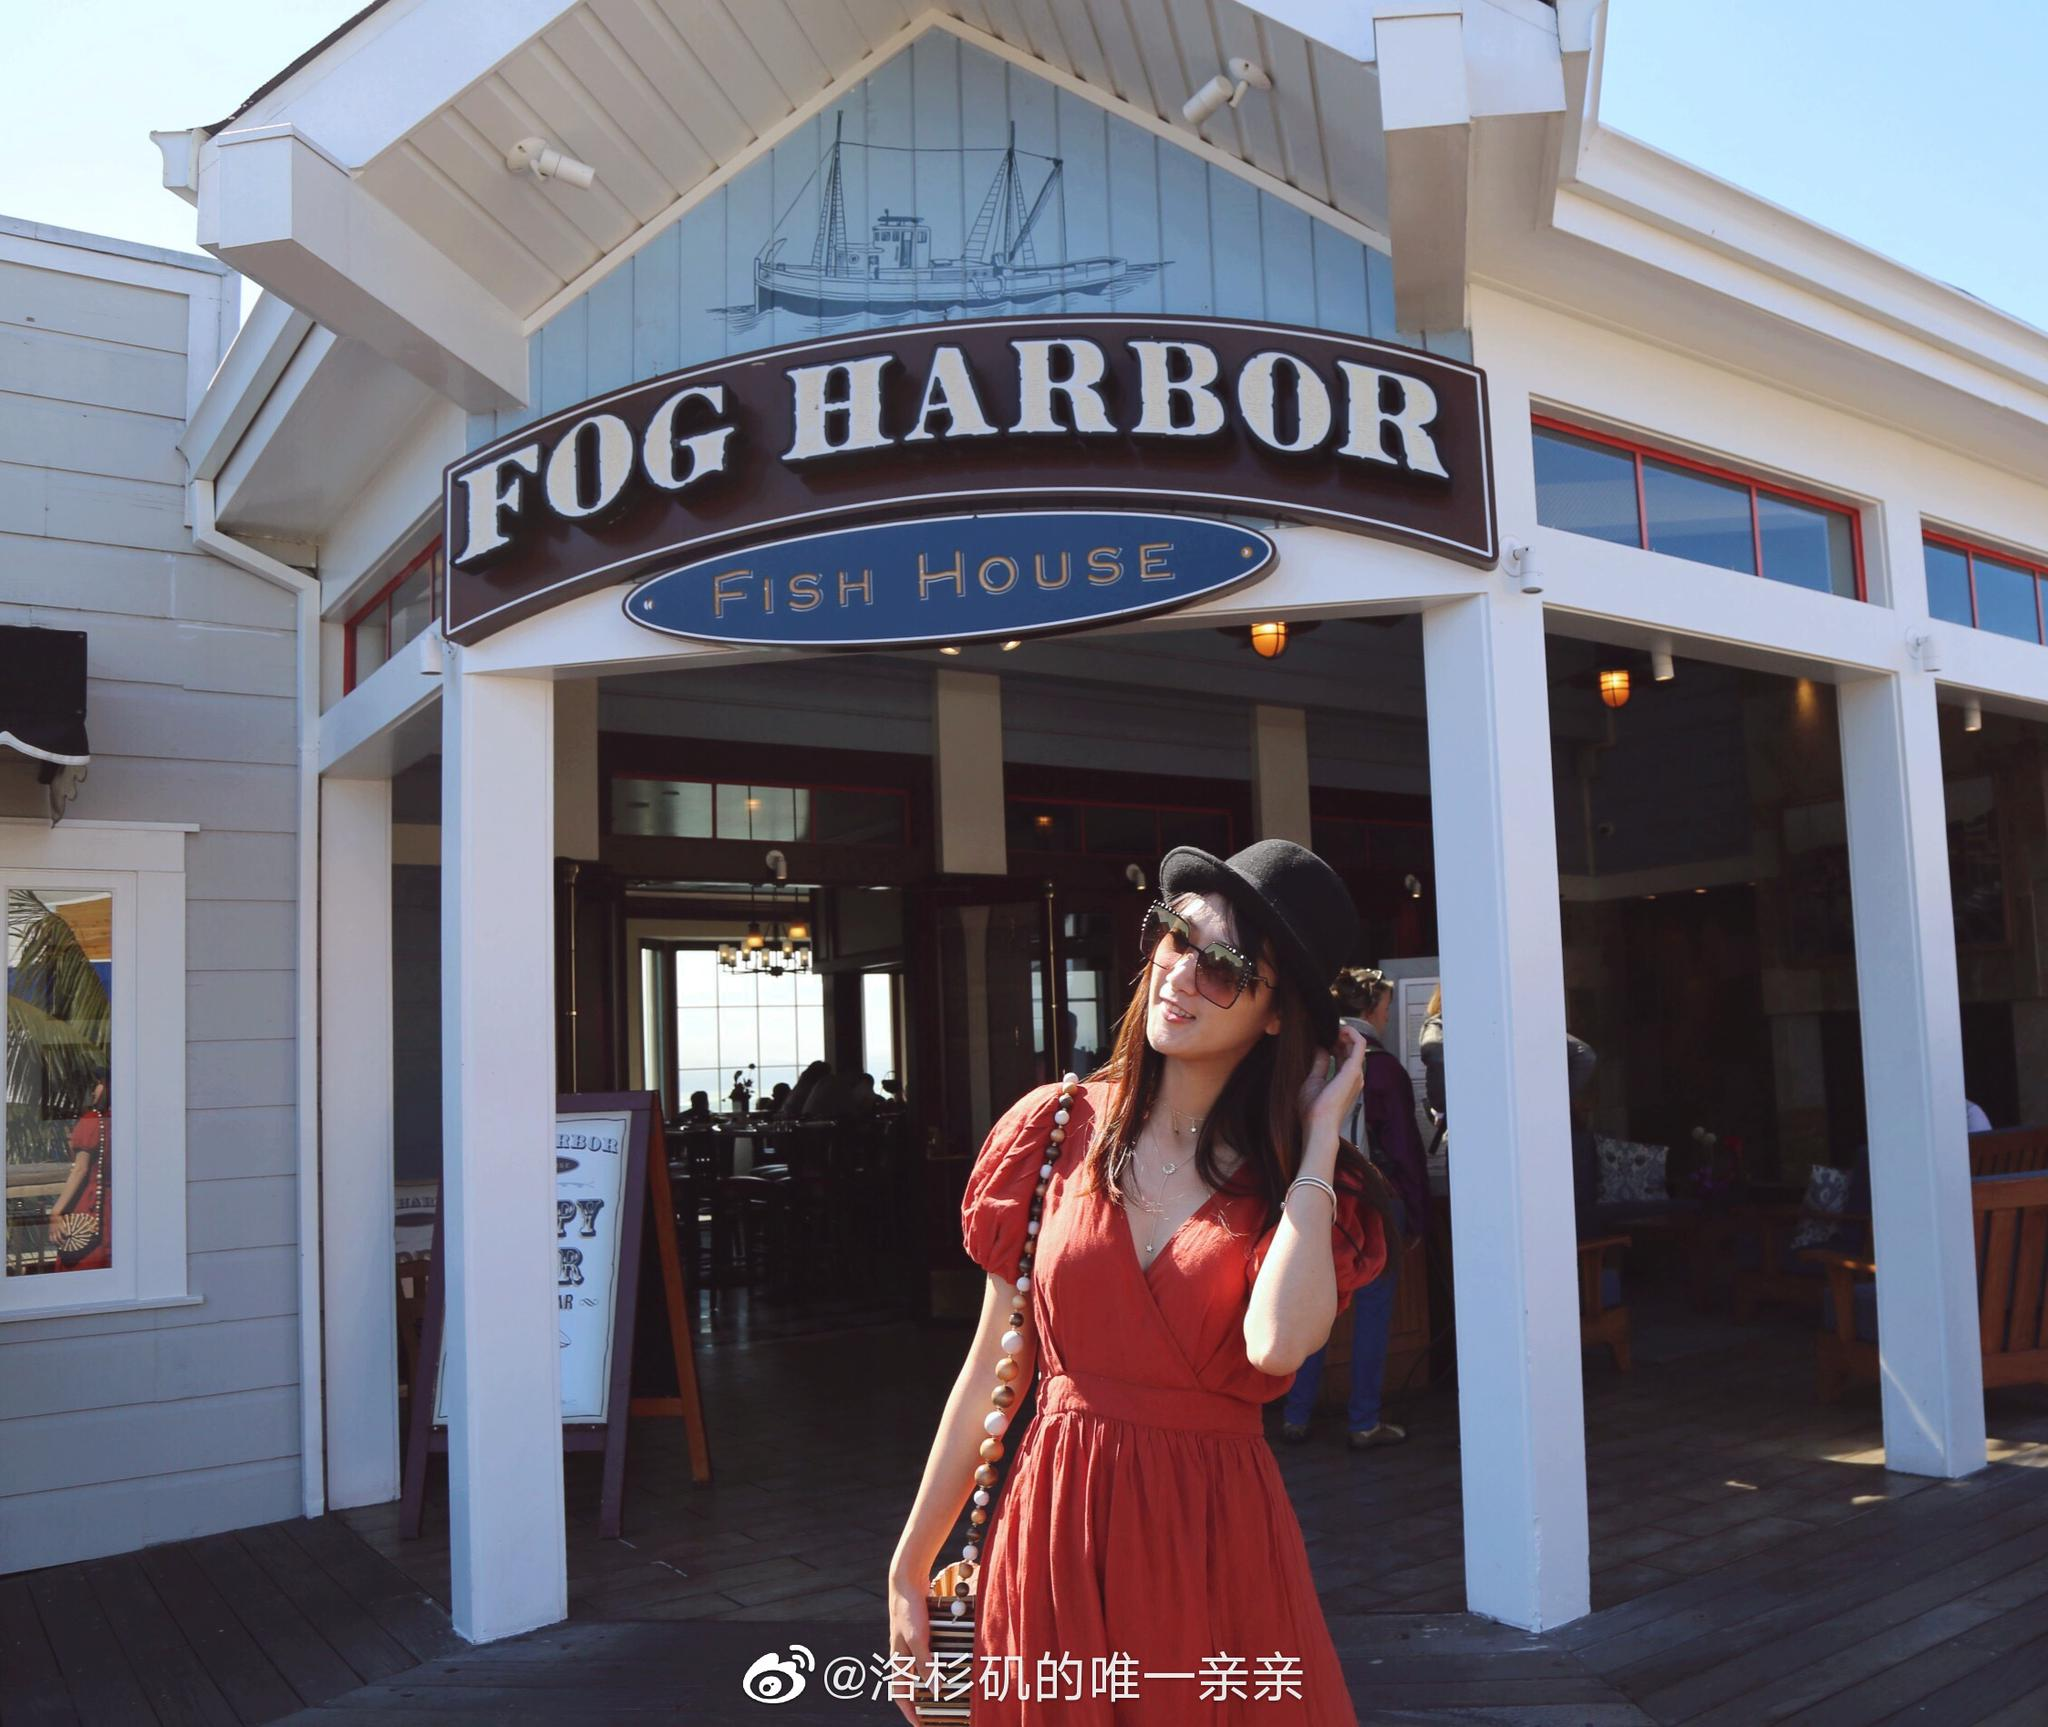 ??旧金山 Fog Harbor Fish House 渔人码